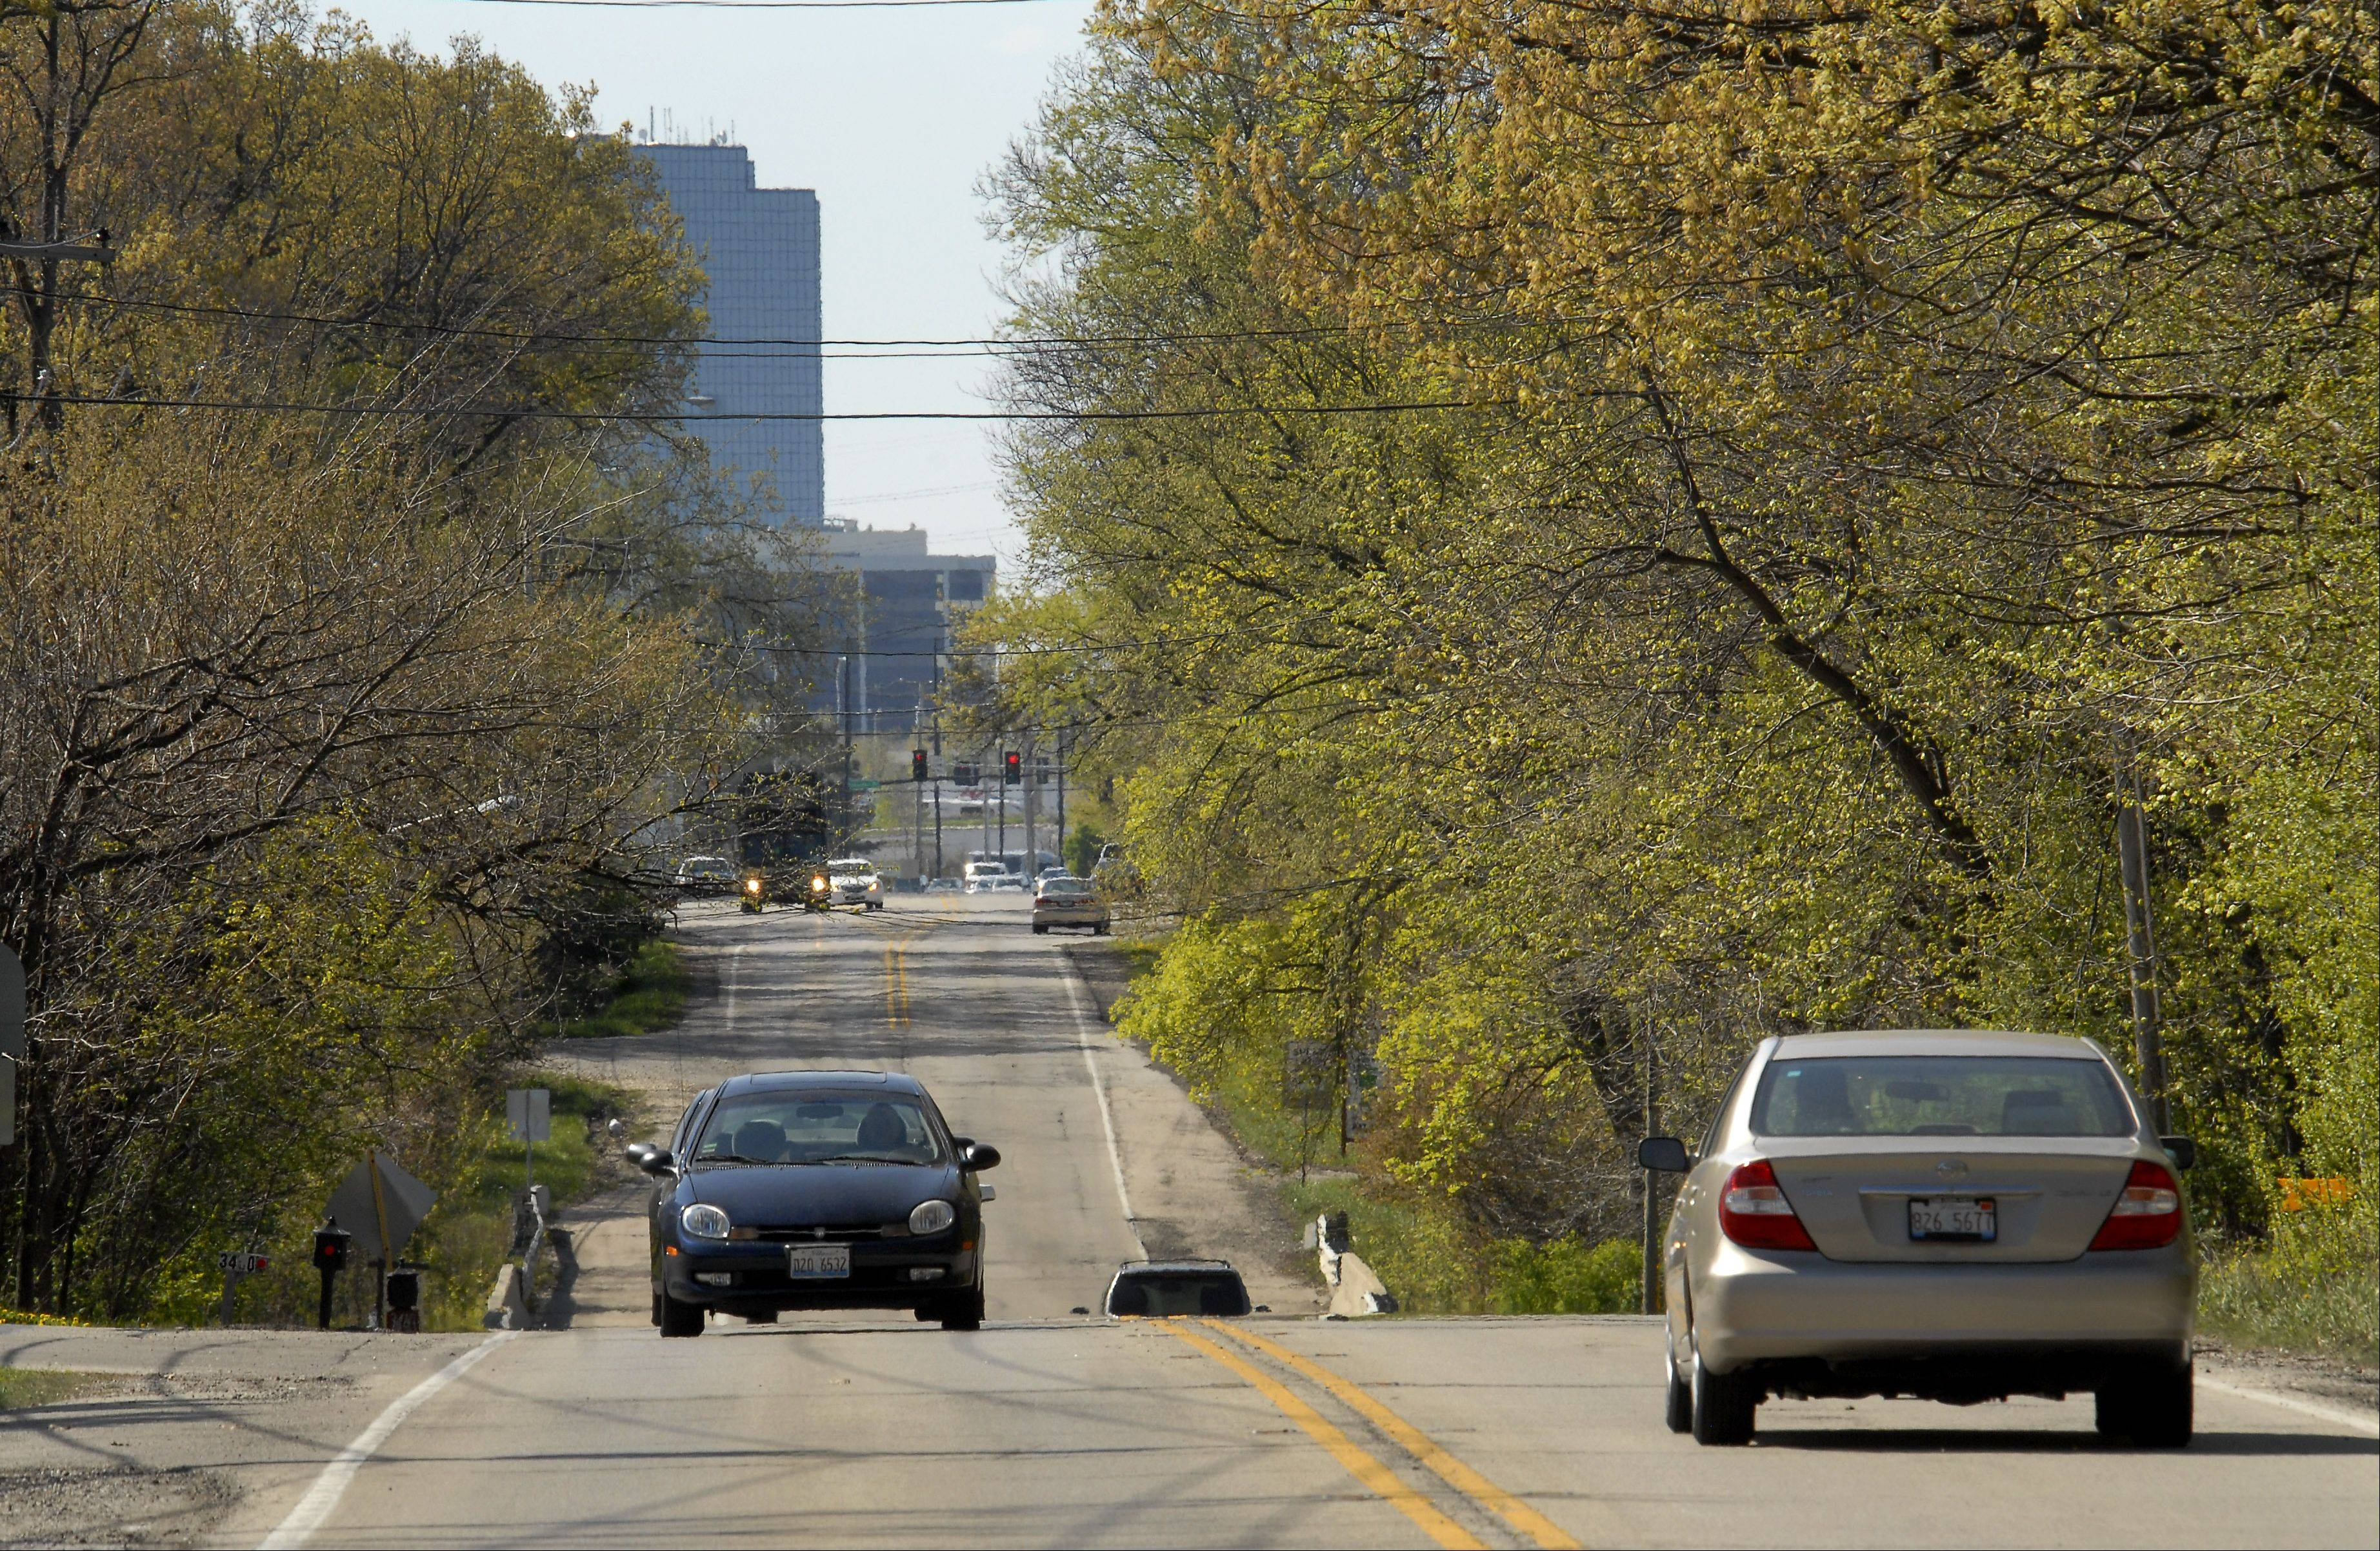 Discussions and studies continue on whether to widened the tree-lined stretch of Meacham Road in Rolling Meadows and Schaumburg to three lanes.